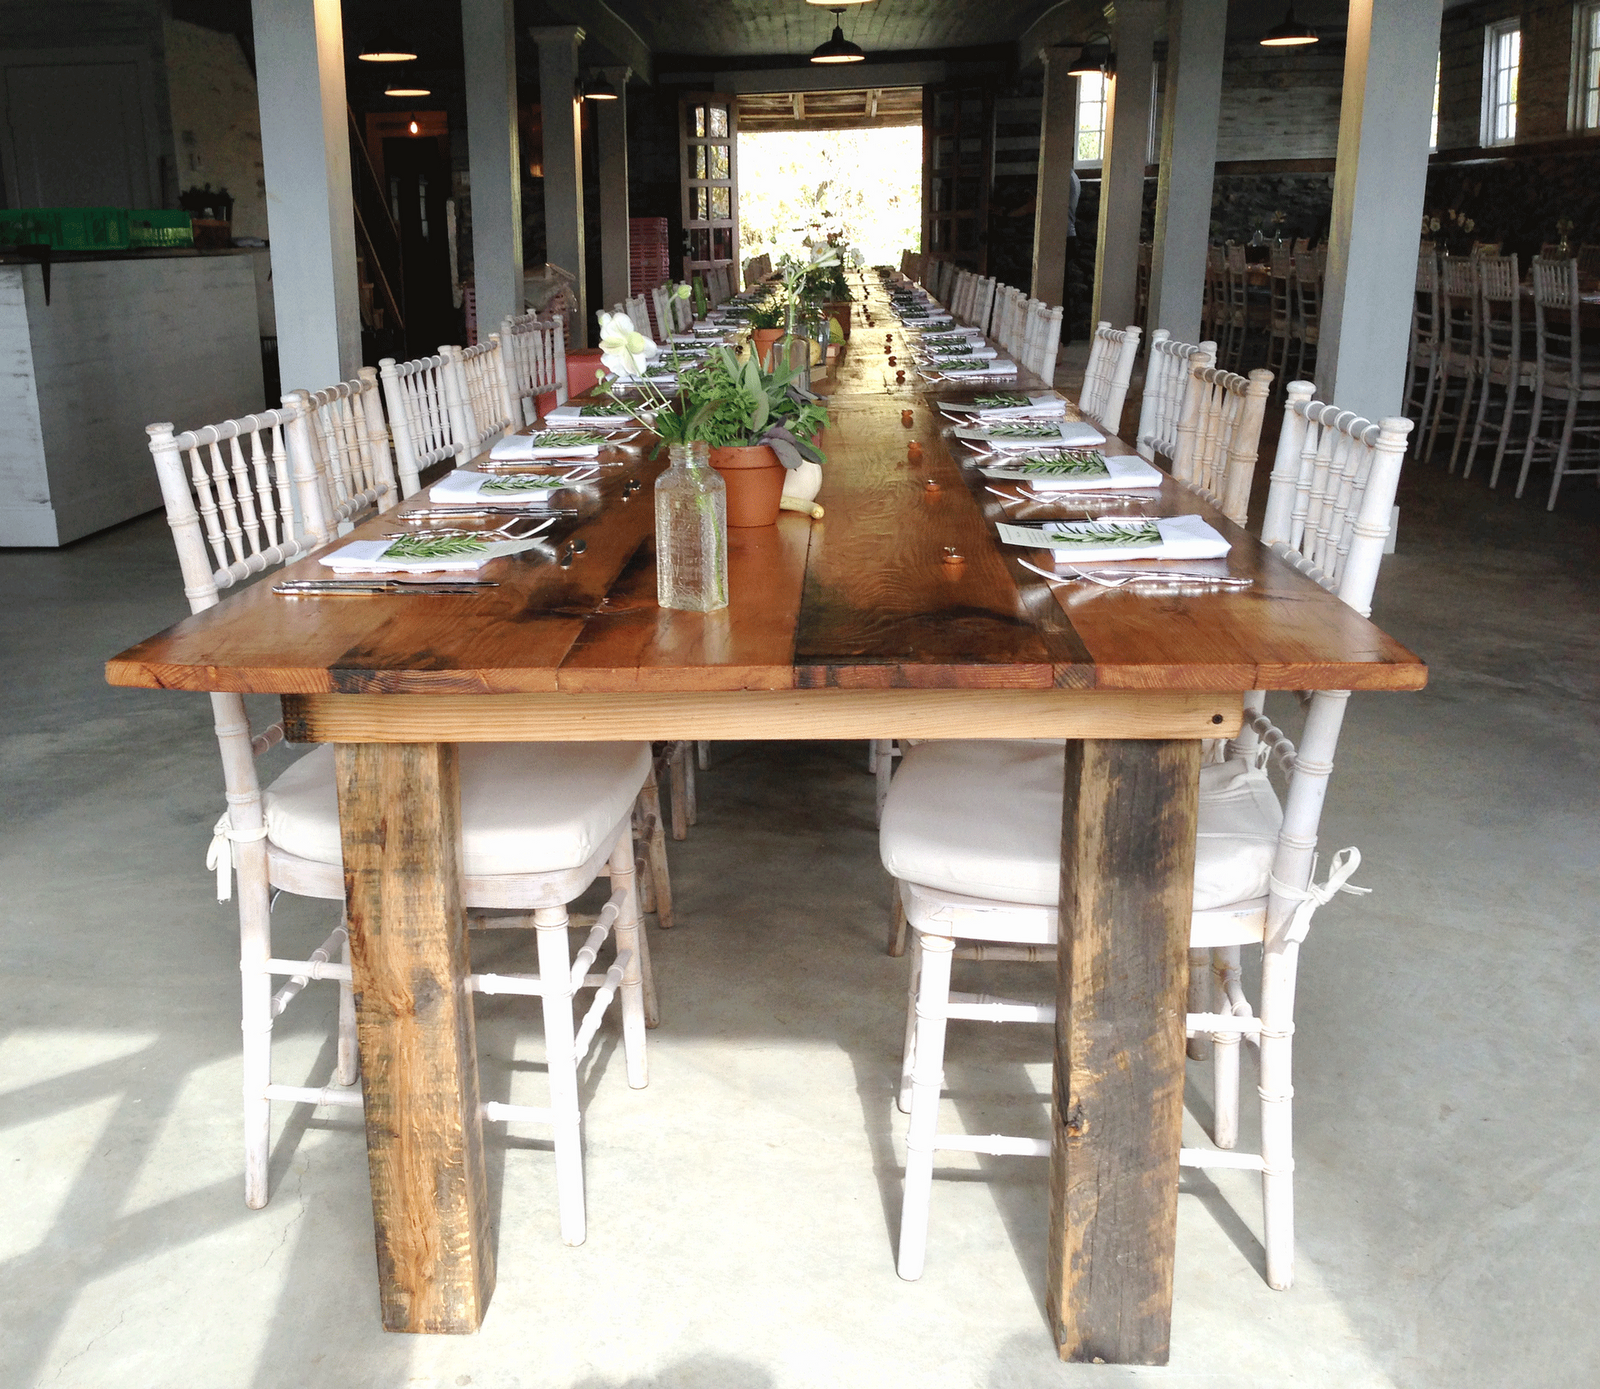 Lovely Farm Tables W/ Chiavari Chairs... Pair With A Lace/burlap Runner